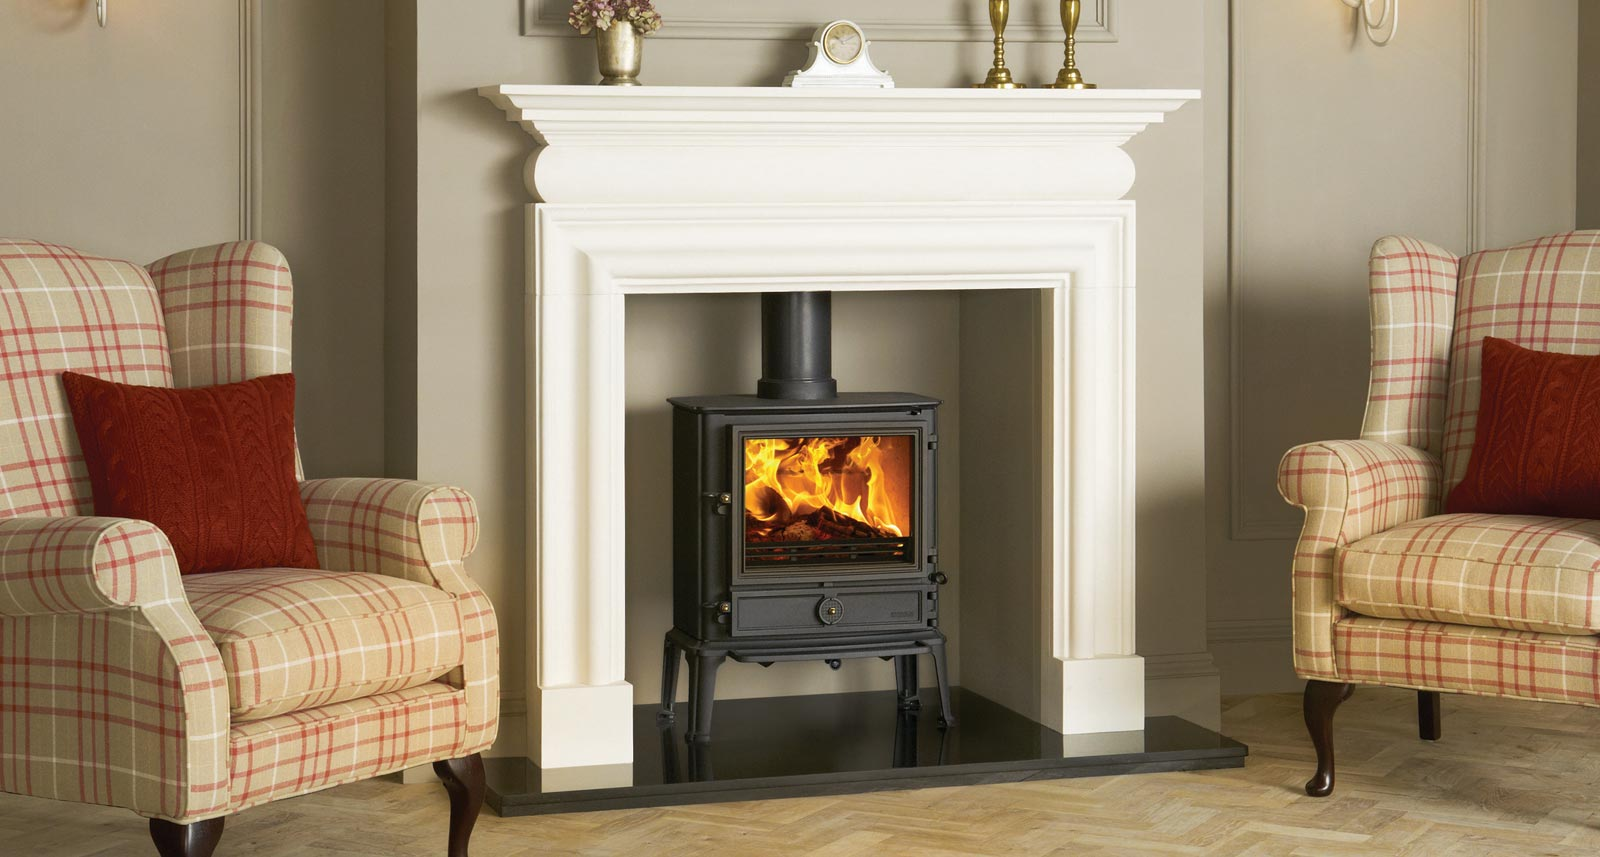 Allen Valley Stoves - Web Design and Marketing